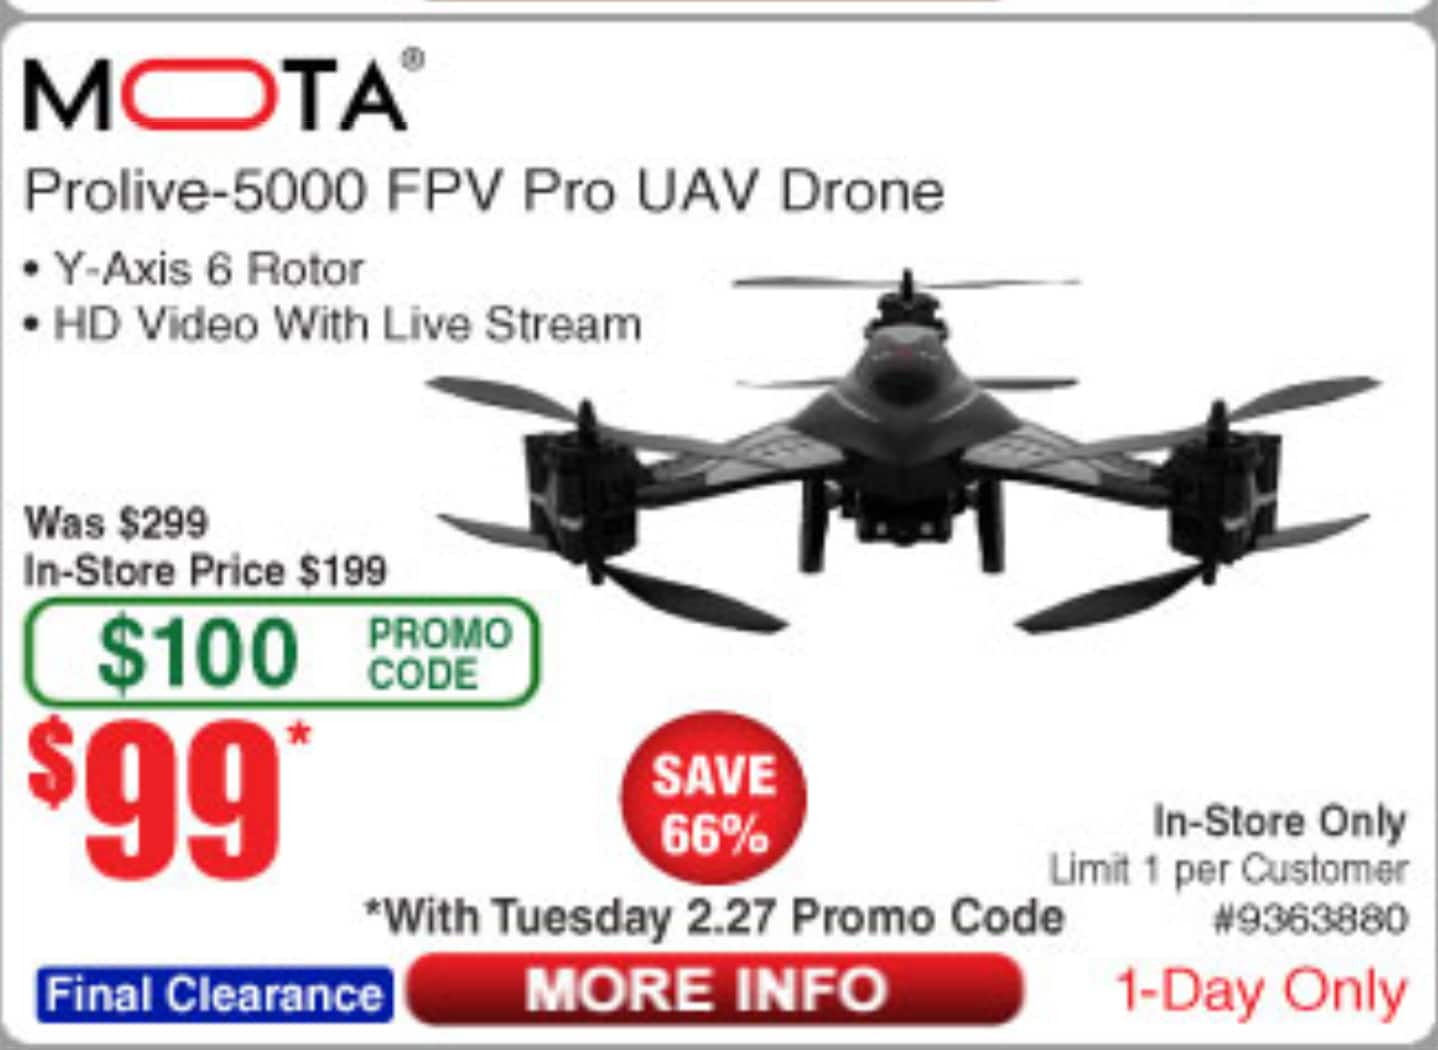 Mota prolive 5000 Drone 99$ 1 Day only be with promo code $99